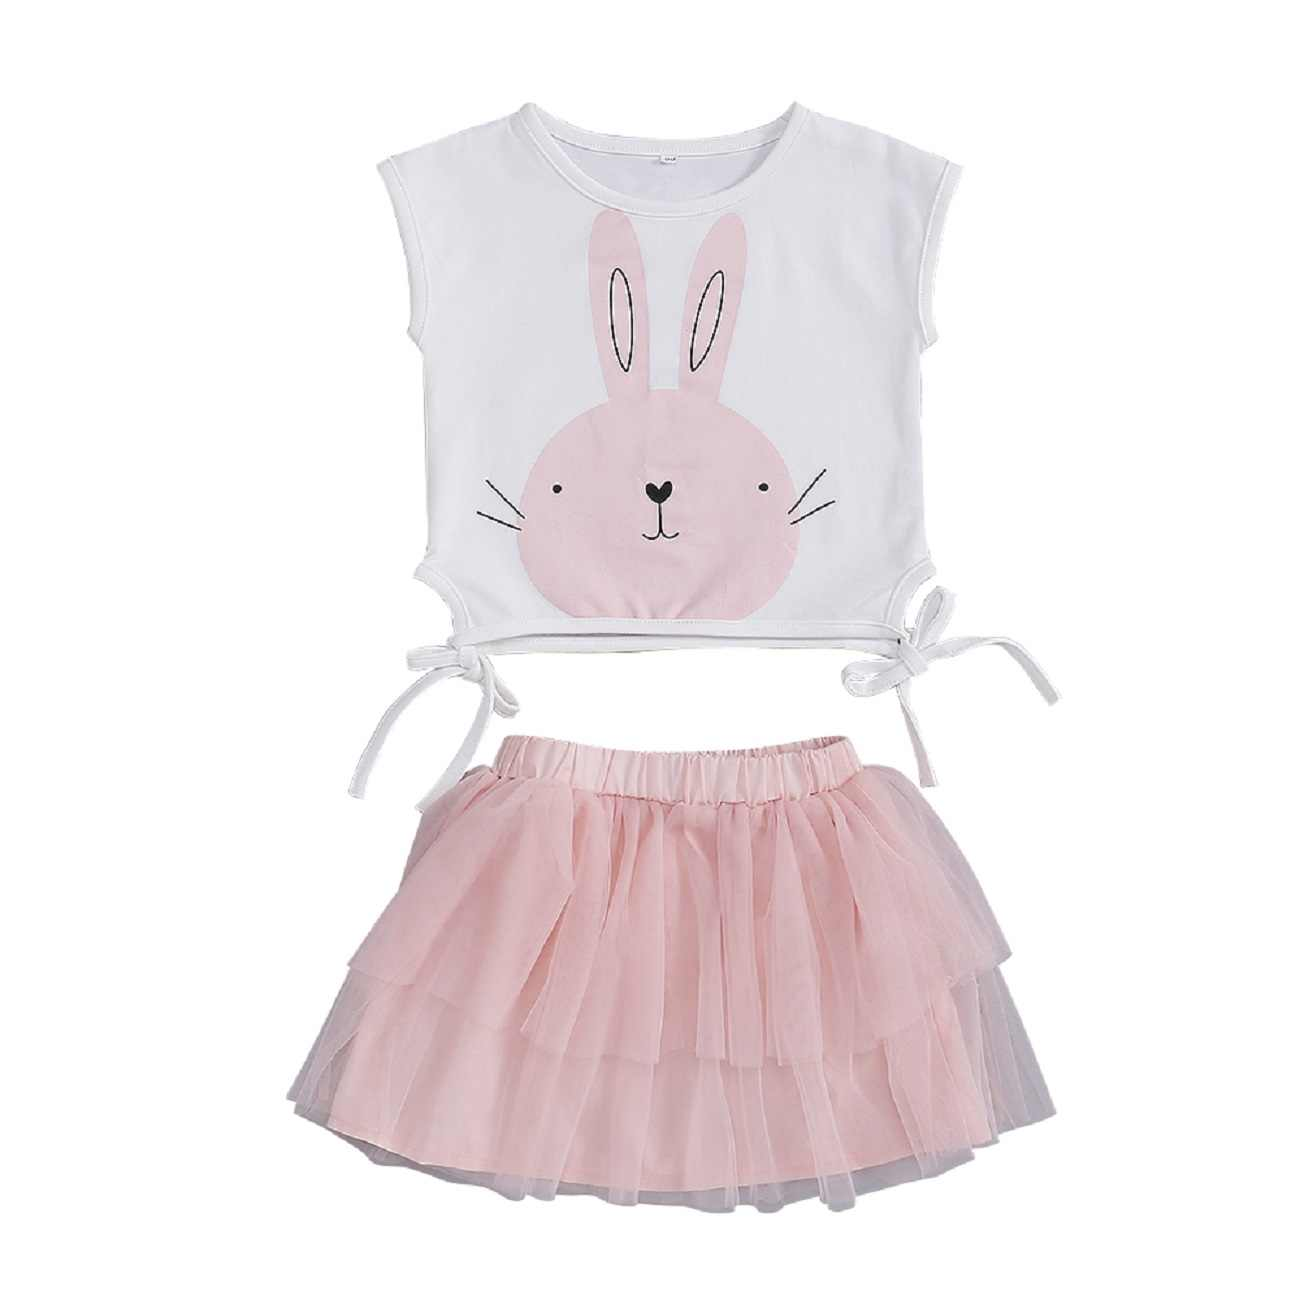 2cfea1ef2 Detail Feedback Questions about Pudcoco 2019 Summer 2PCS Toddler Baby Girl  Clothes Easter Bunny T Shirt Sleeveless Tops+Tutu Skirts Easter Pink Outfit  Set ...